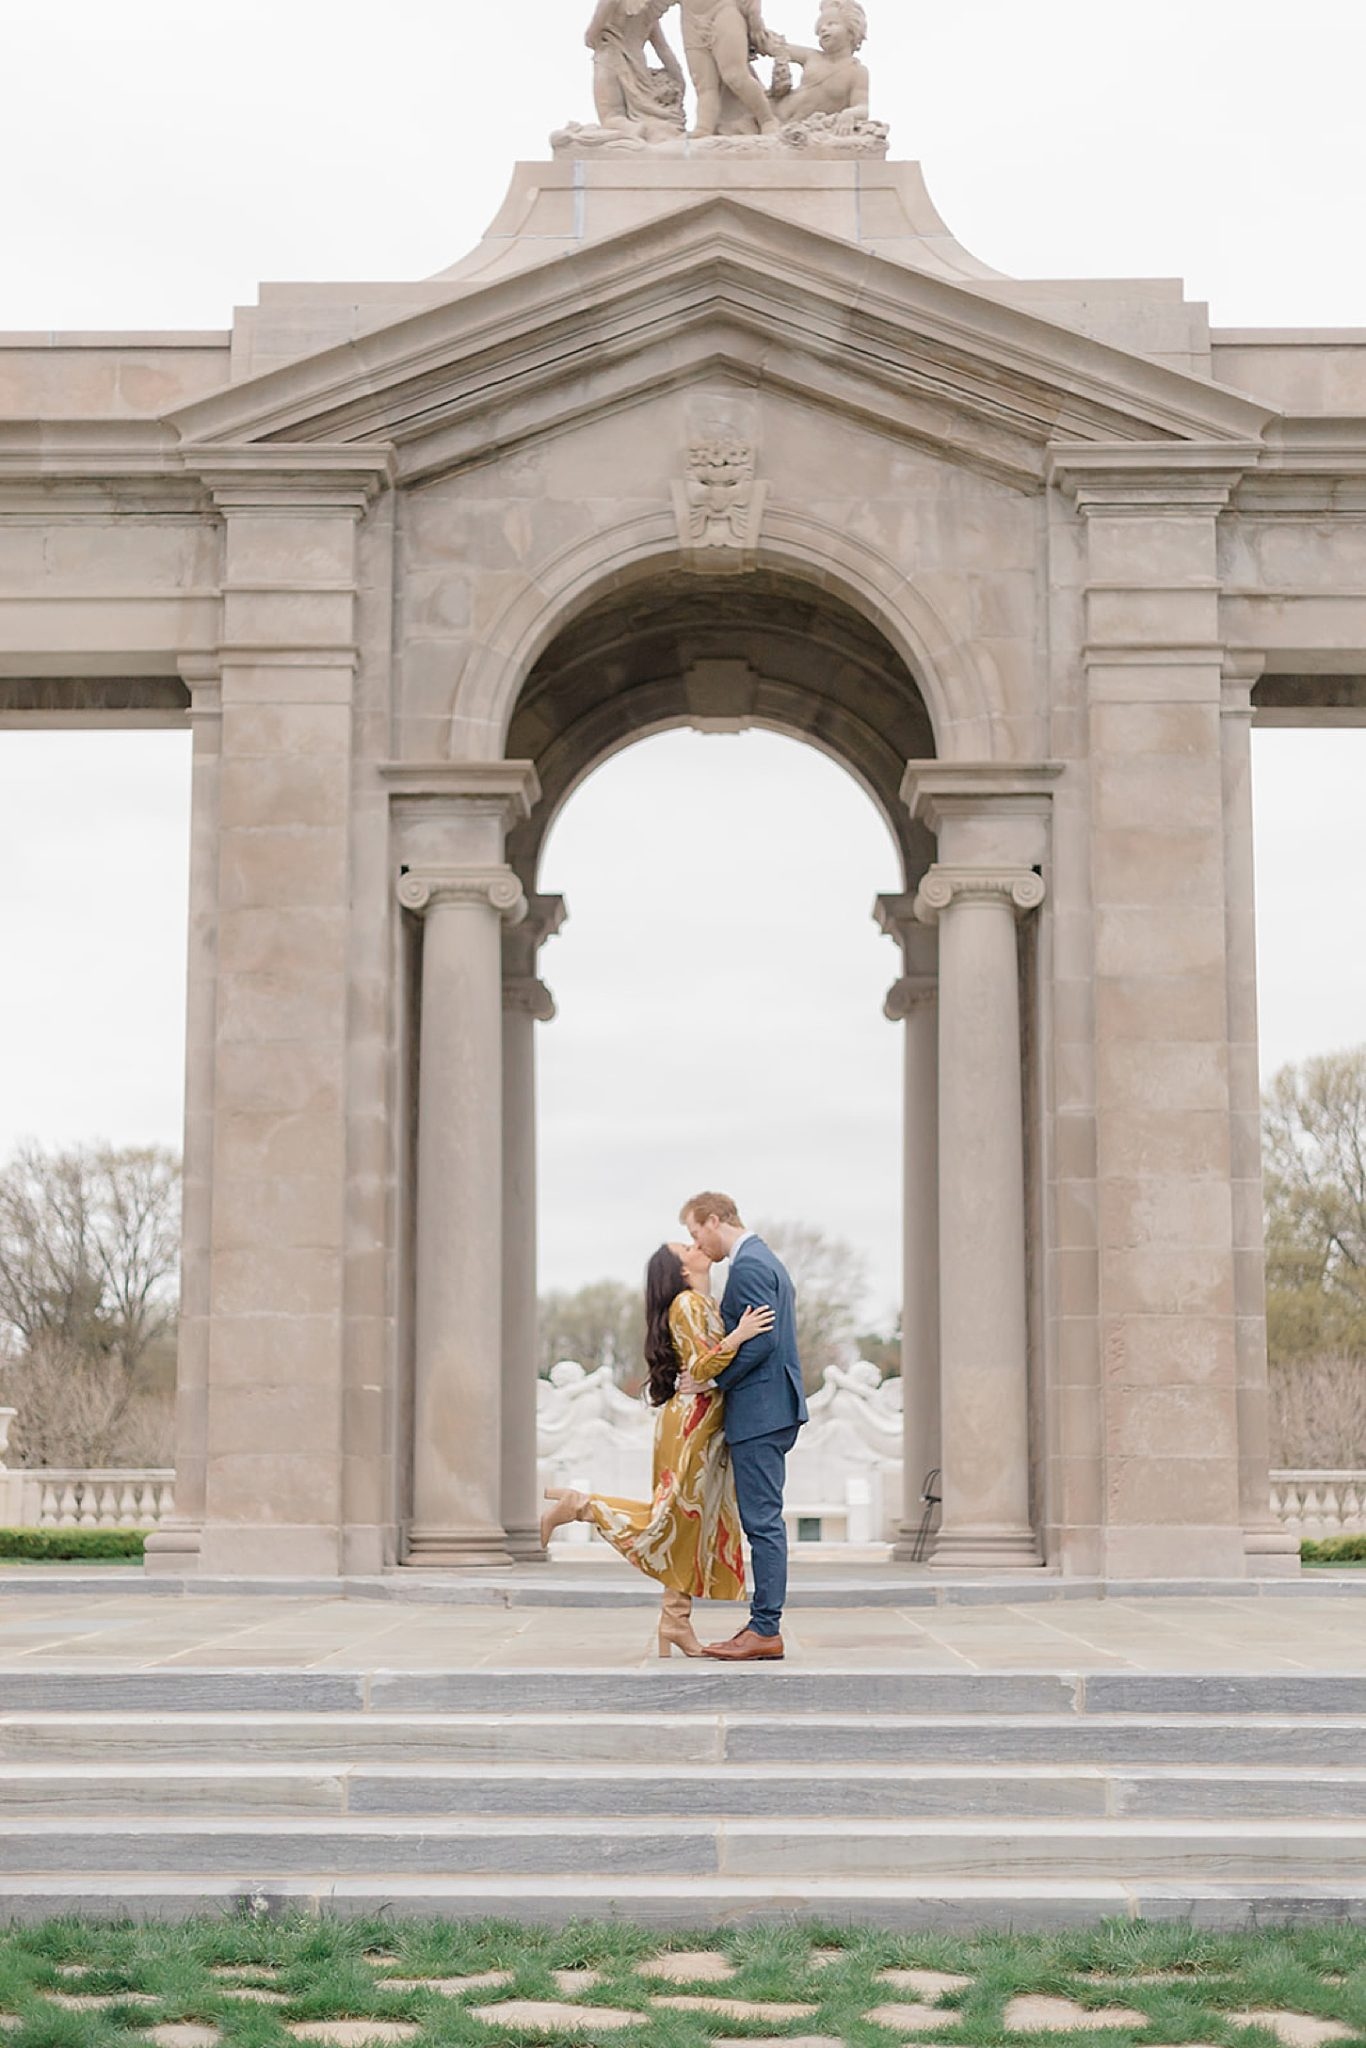 Alfred I. DuPont Hospital for Children Mansion Grounds Engagement Photography by Magdalena Studios 0010 scaled